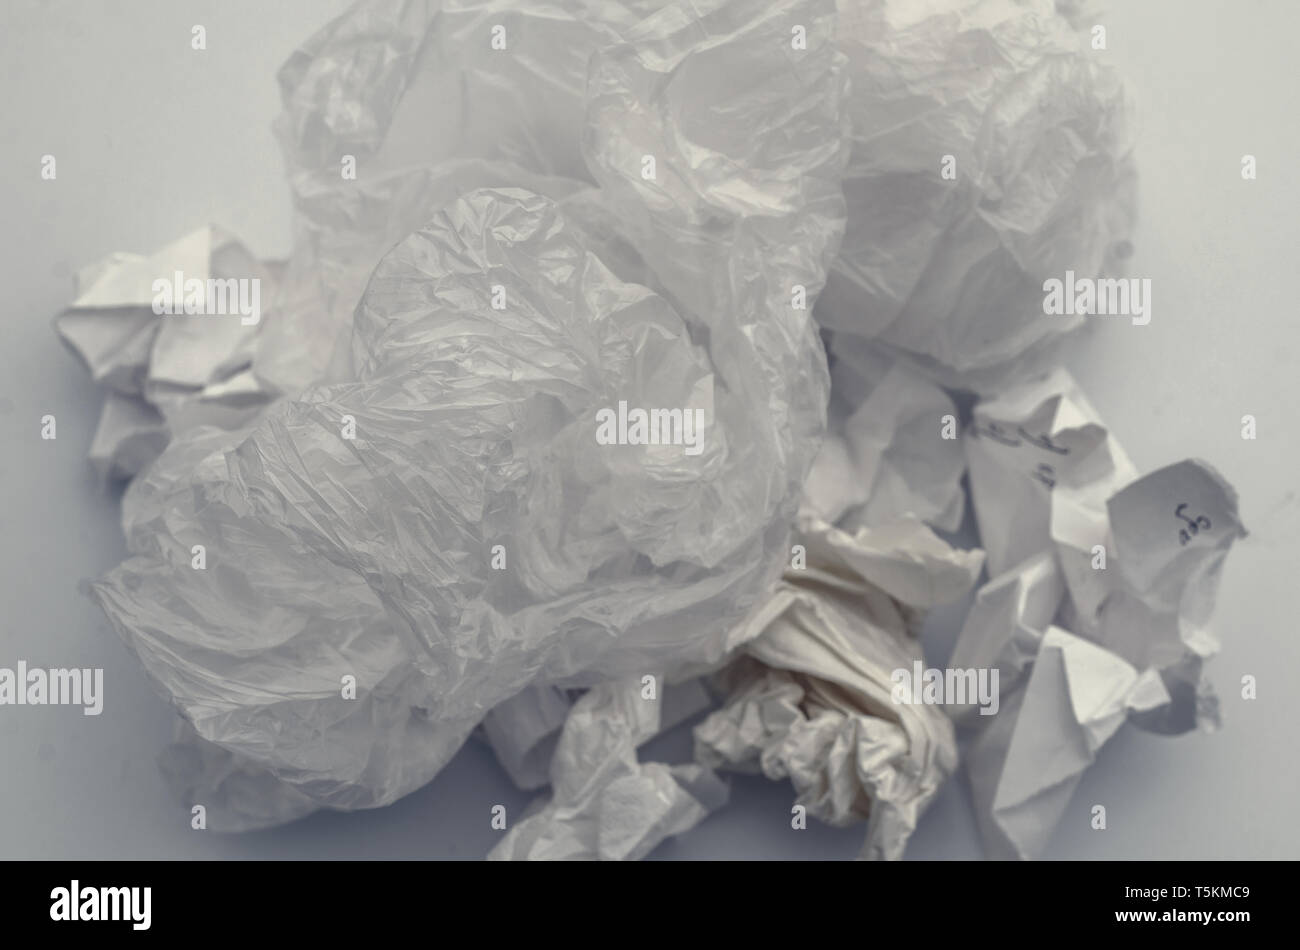 Crumpled sheets of paper, trash. Pollution, waste, ecology. - Stock Image